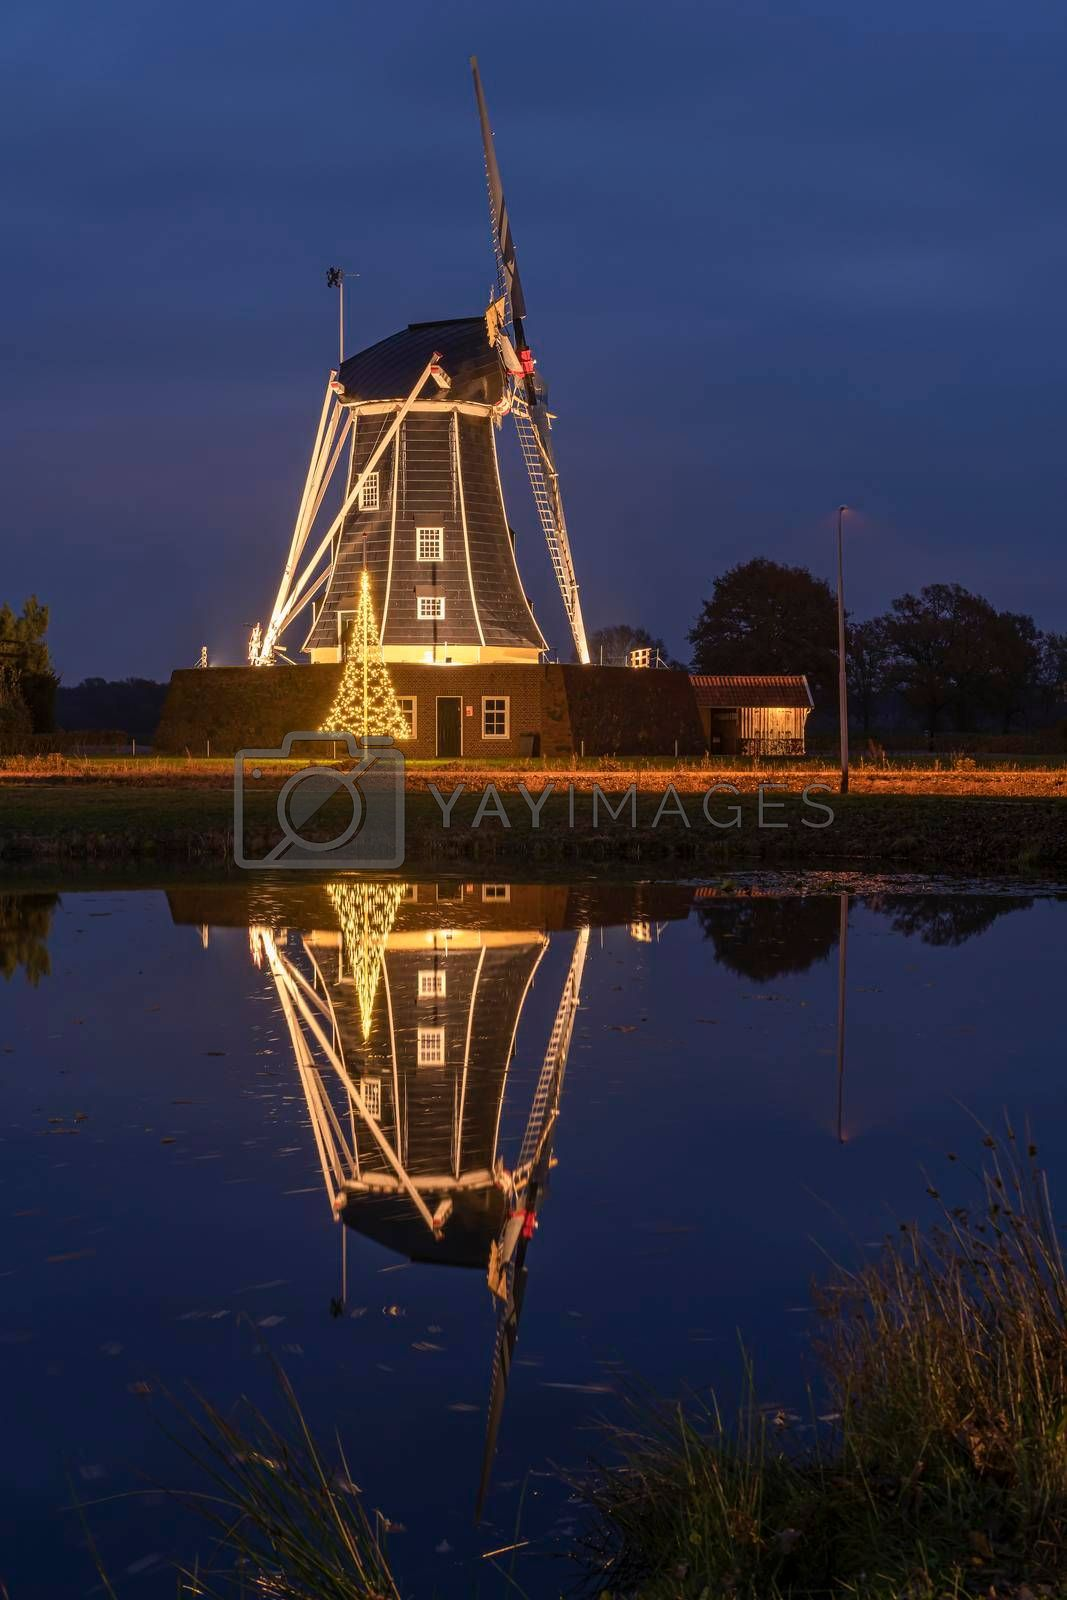 Royalty free image of Bataaf windmill in Winterswijk with a Christmas atmosphere  by Tofotografie